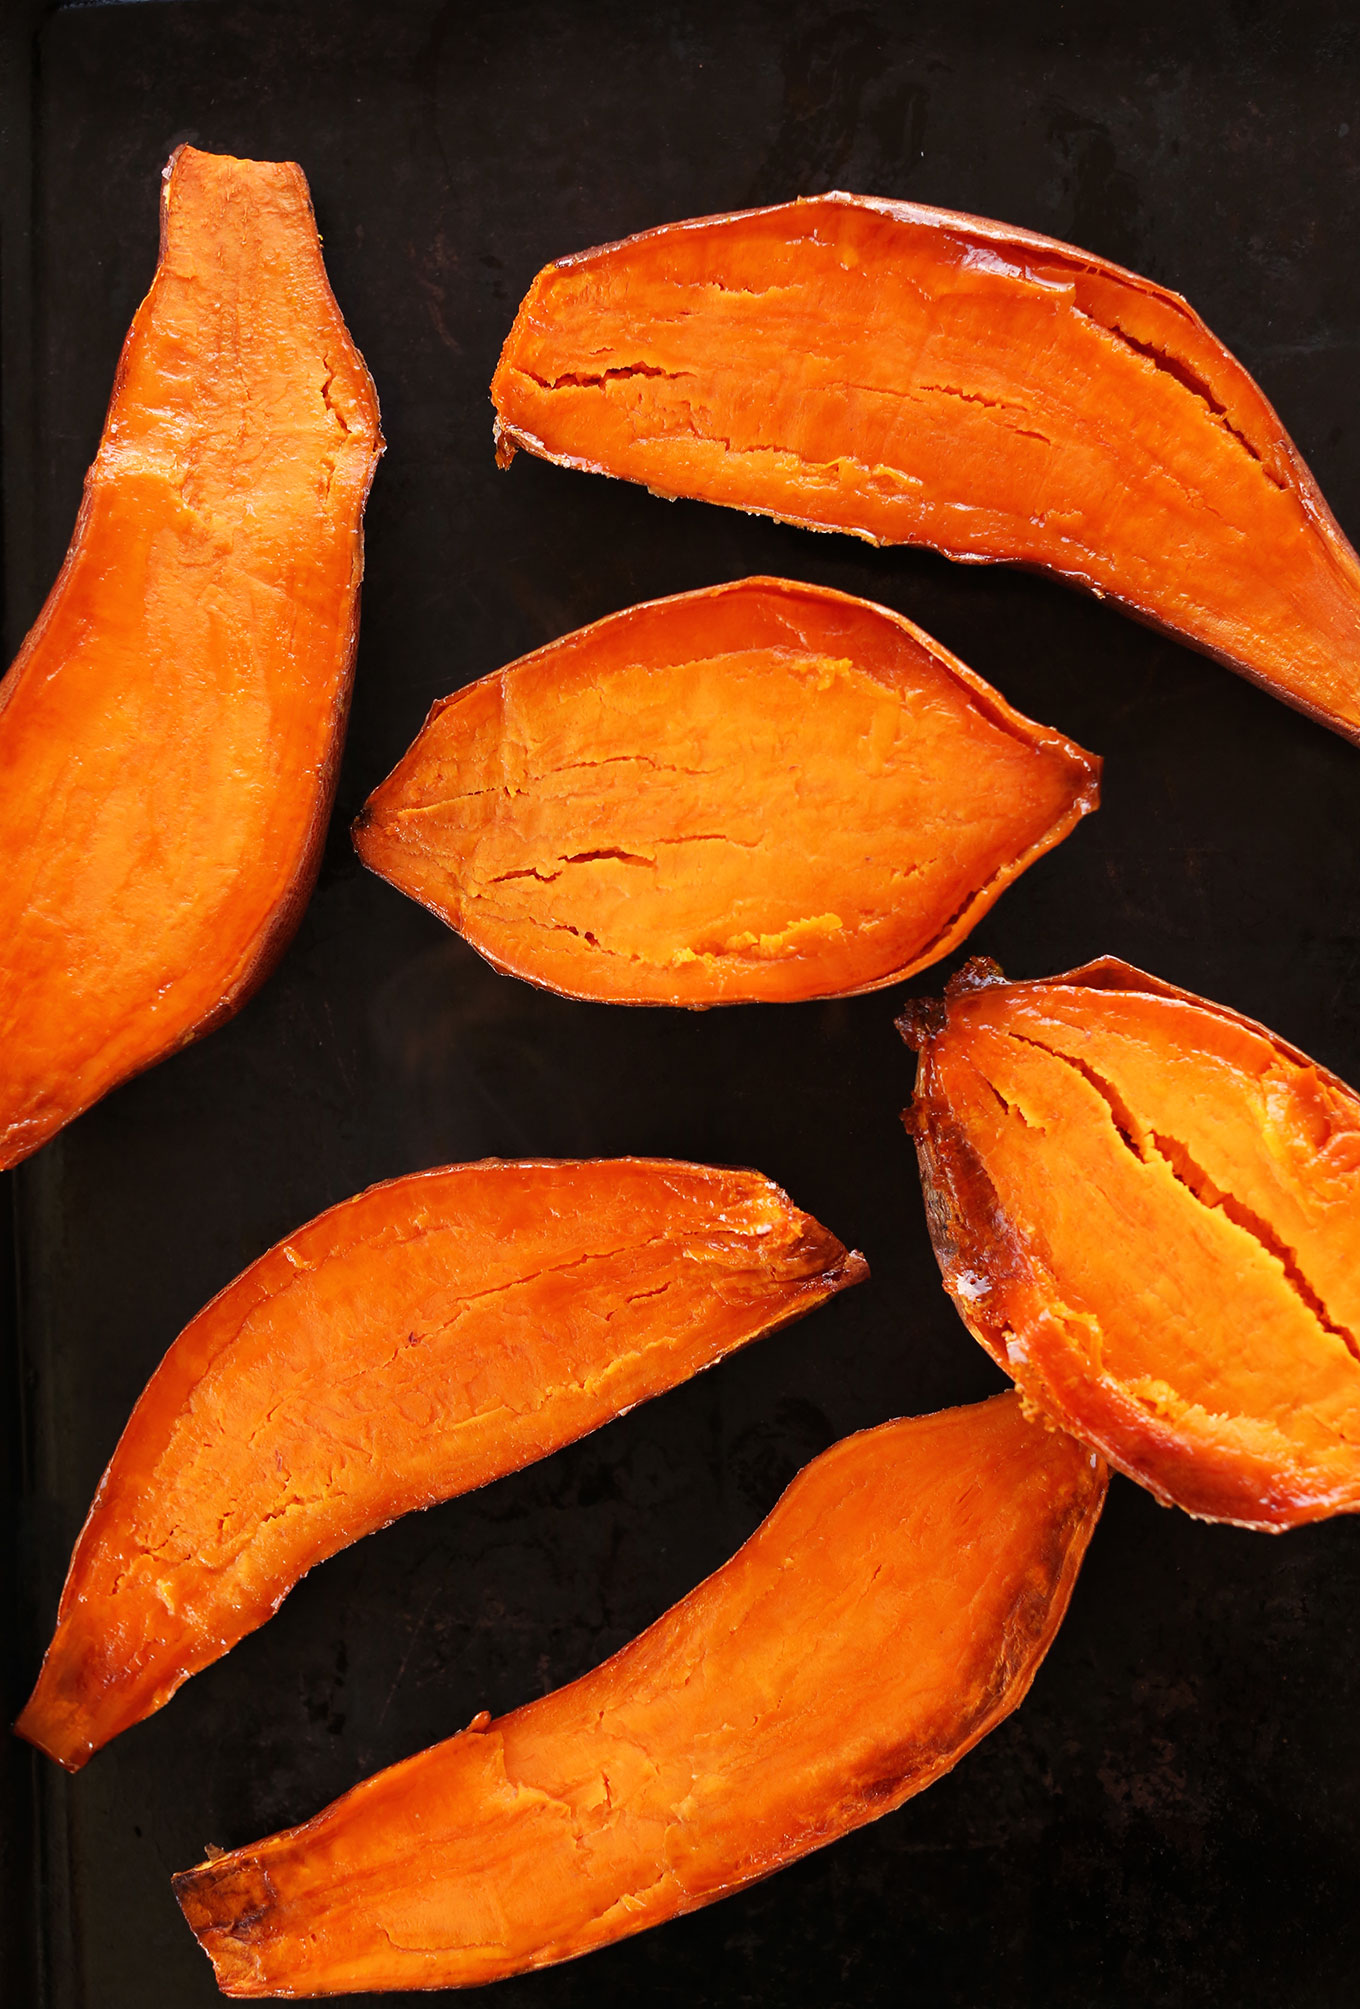 Roasted sweet potatoes for making our Sweet Potato Black Bean Burgers recipe